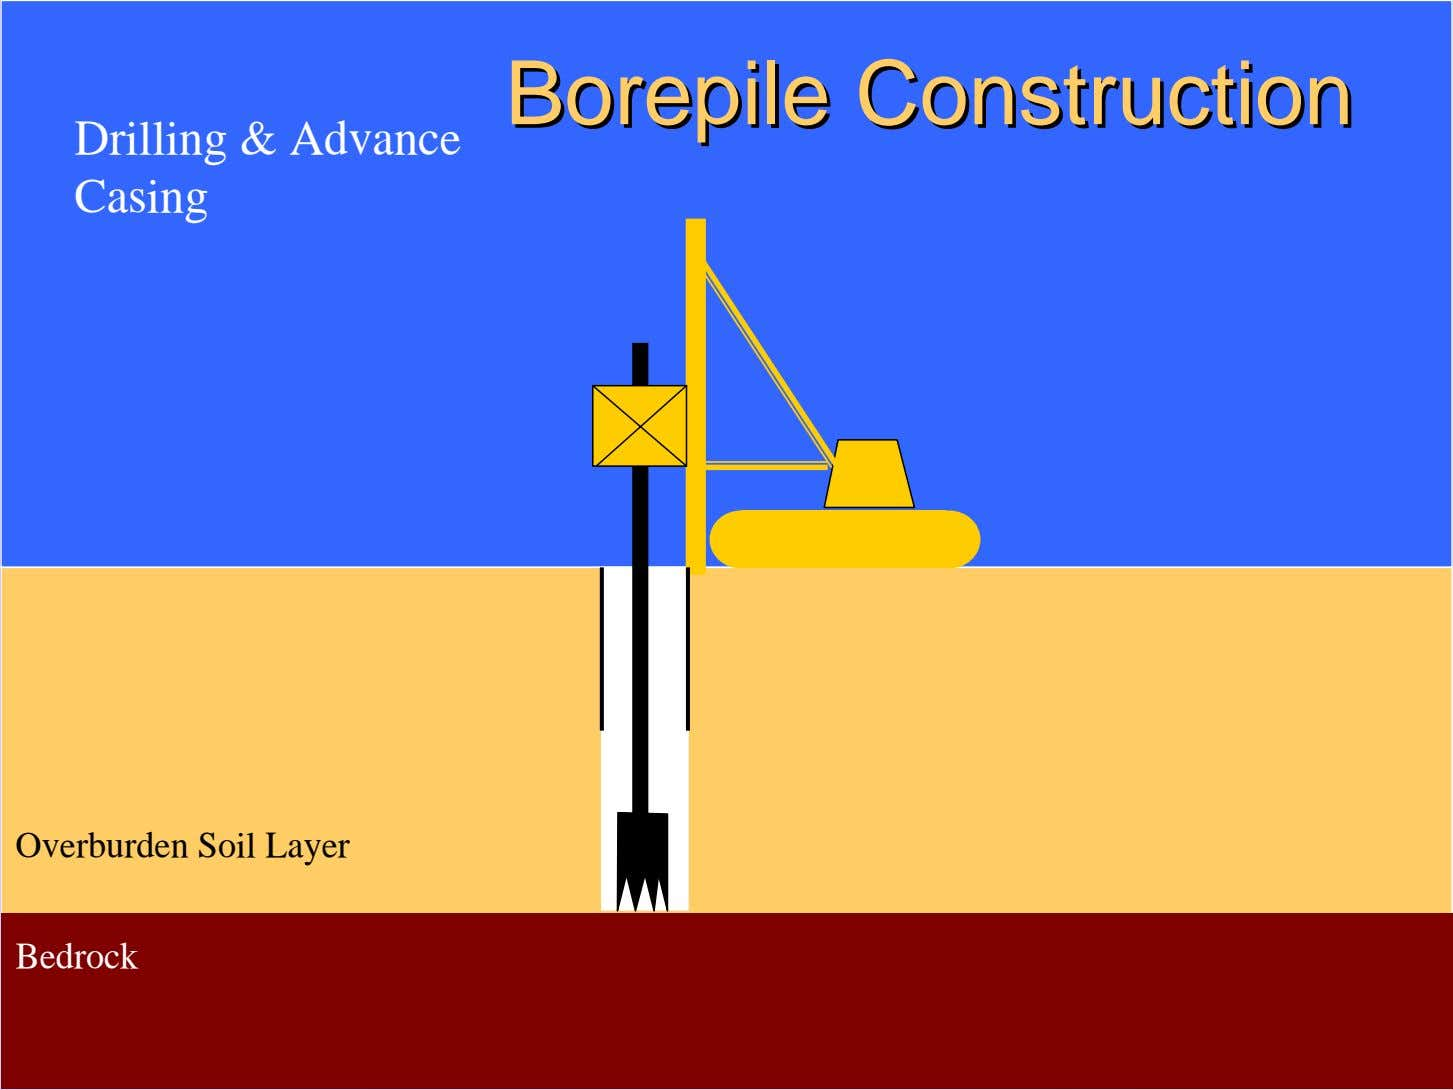 BorepileBorepile ConstructionConstruction Drilling & Advance Casing Overburden Soil Layer Bedrock